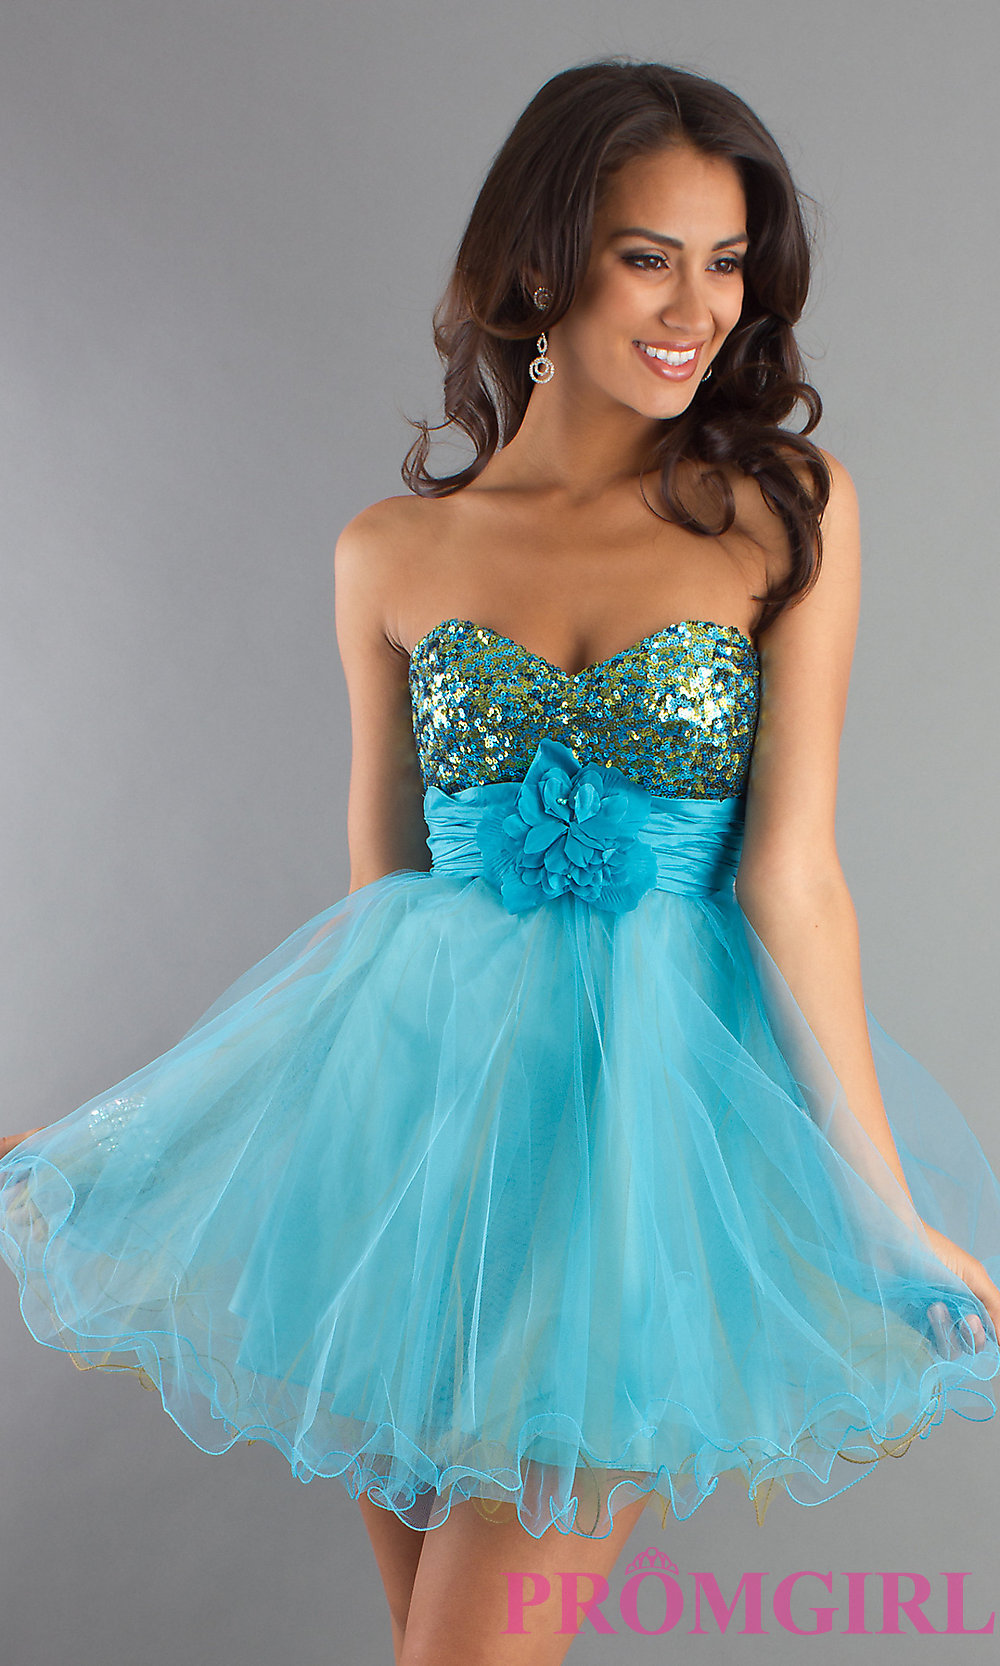 Strapless Baby Doll Party Dress